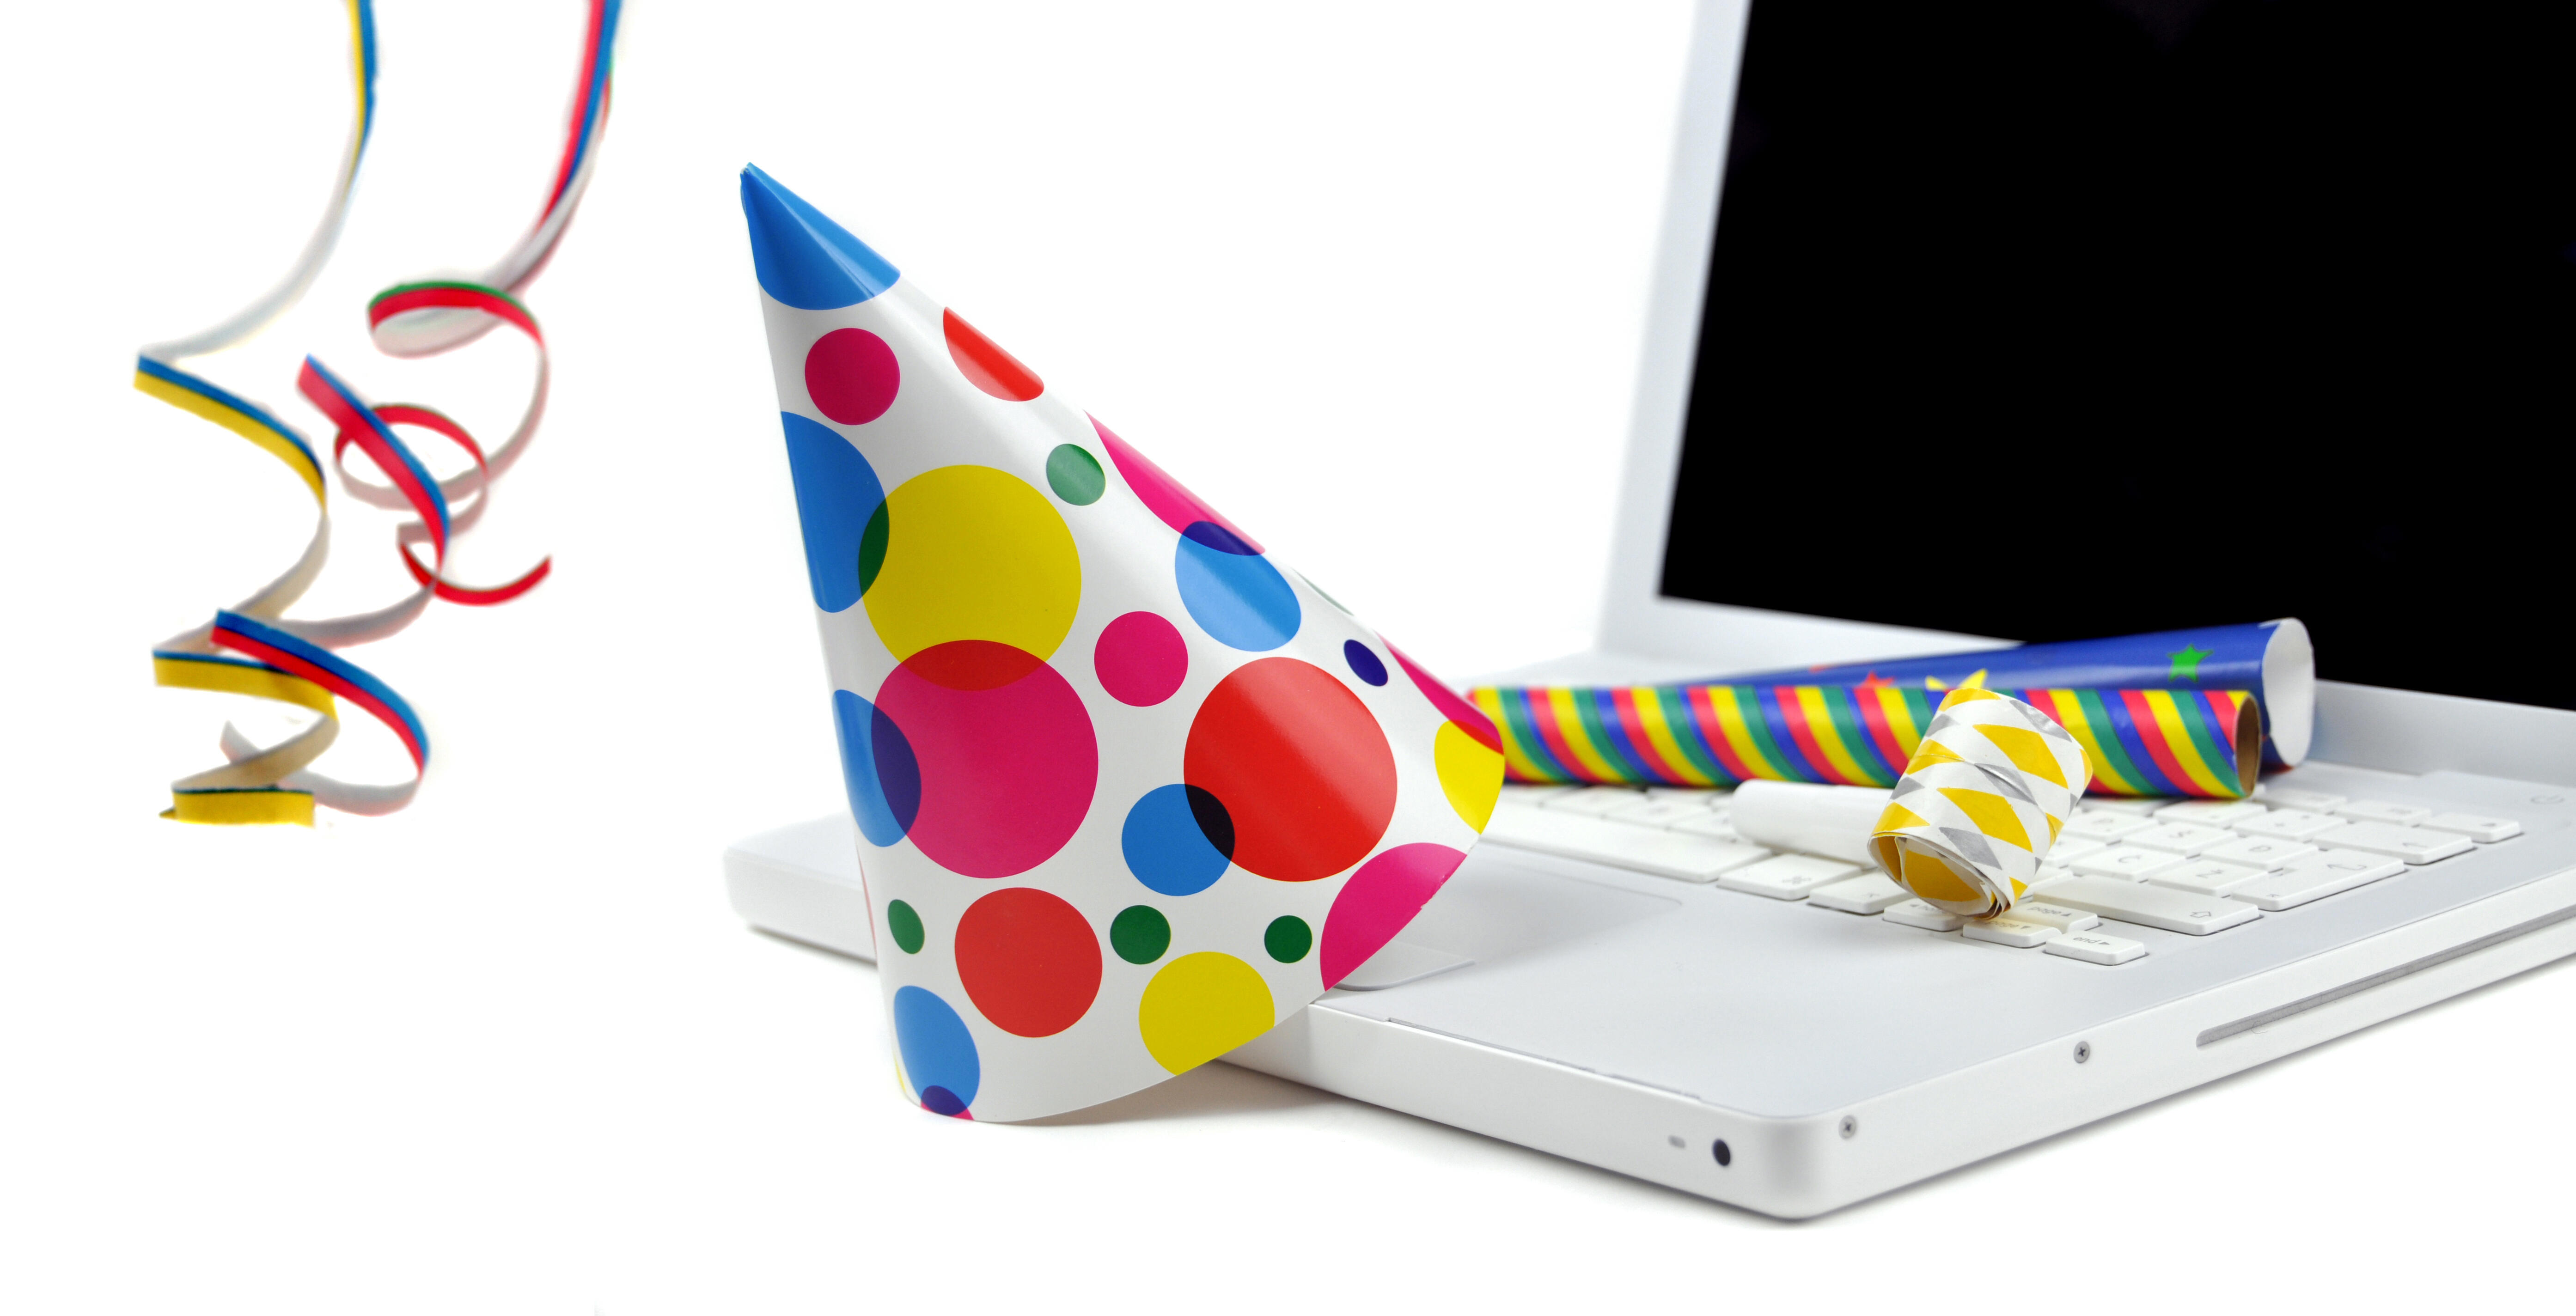 Colorful birthday hat, streamers and noisemakers rest on a white laptop